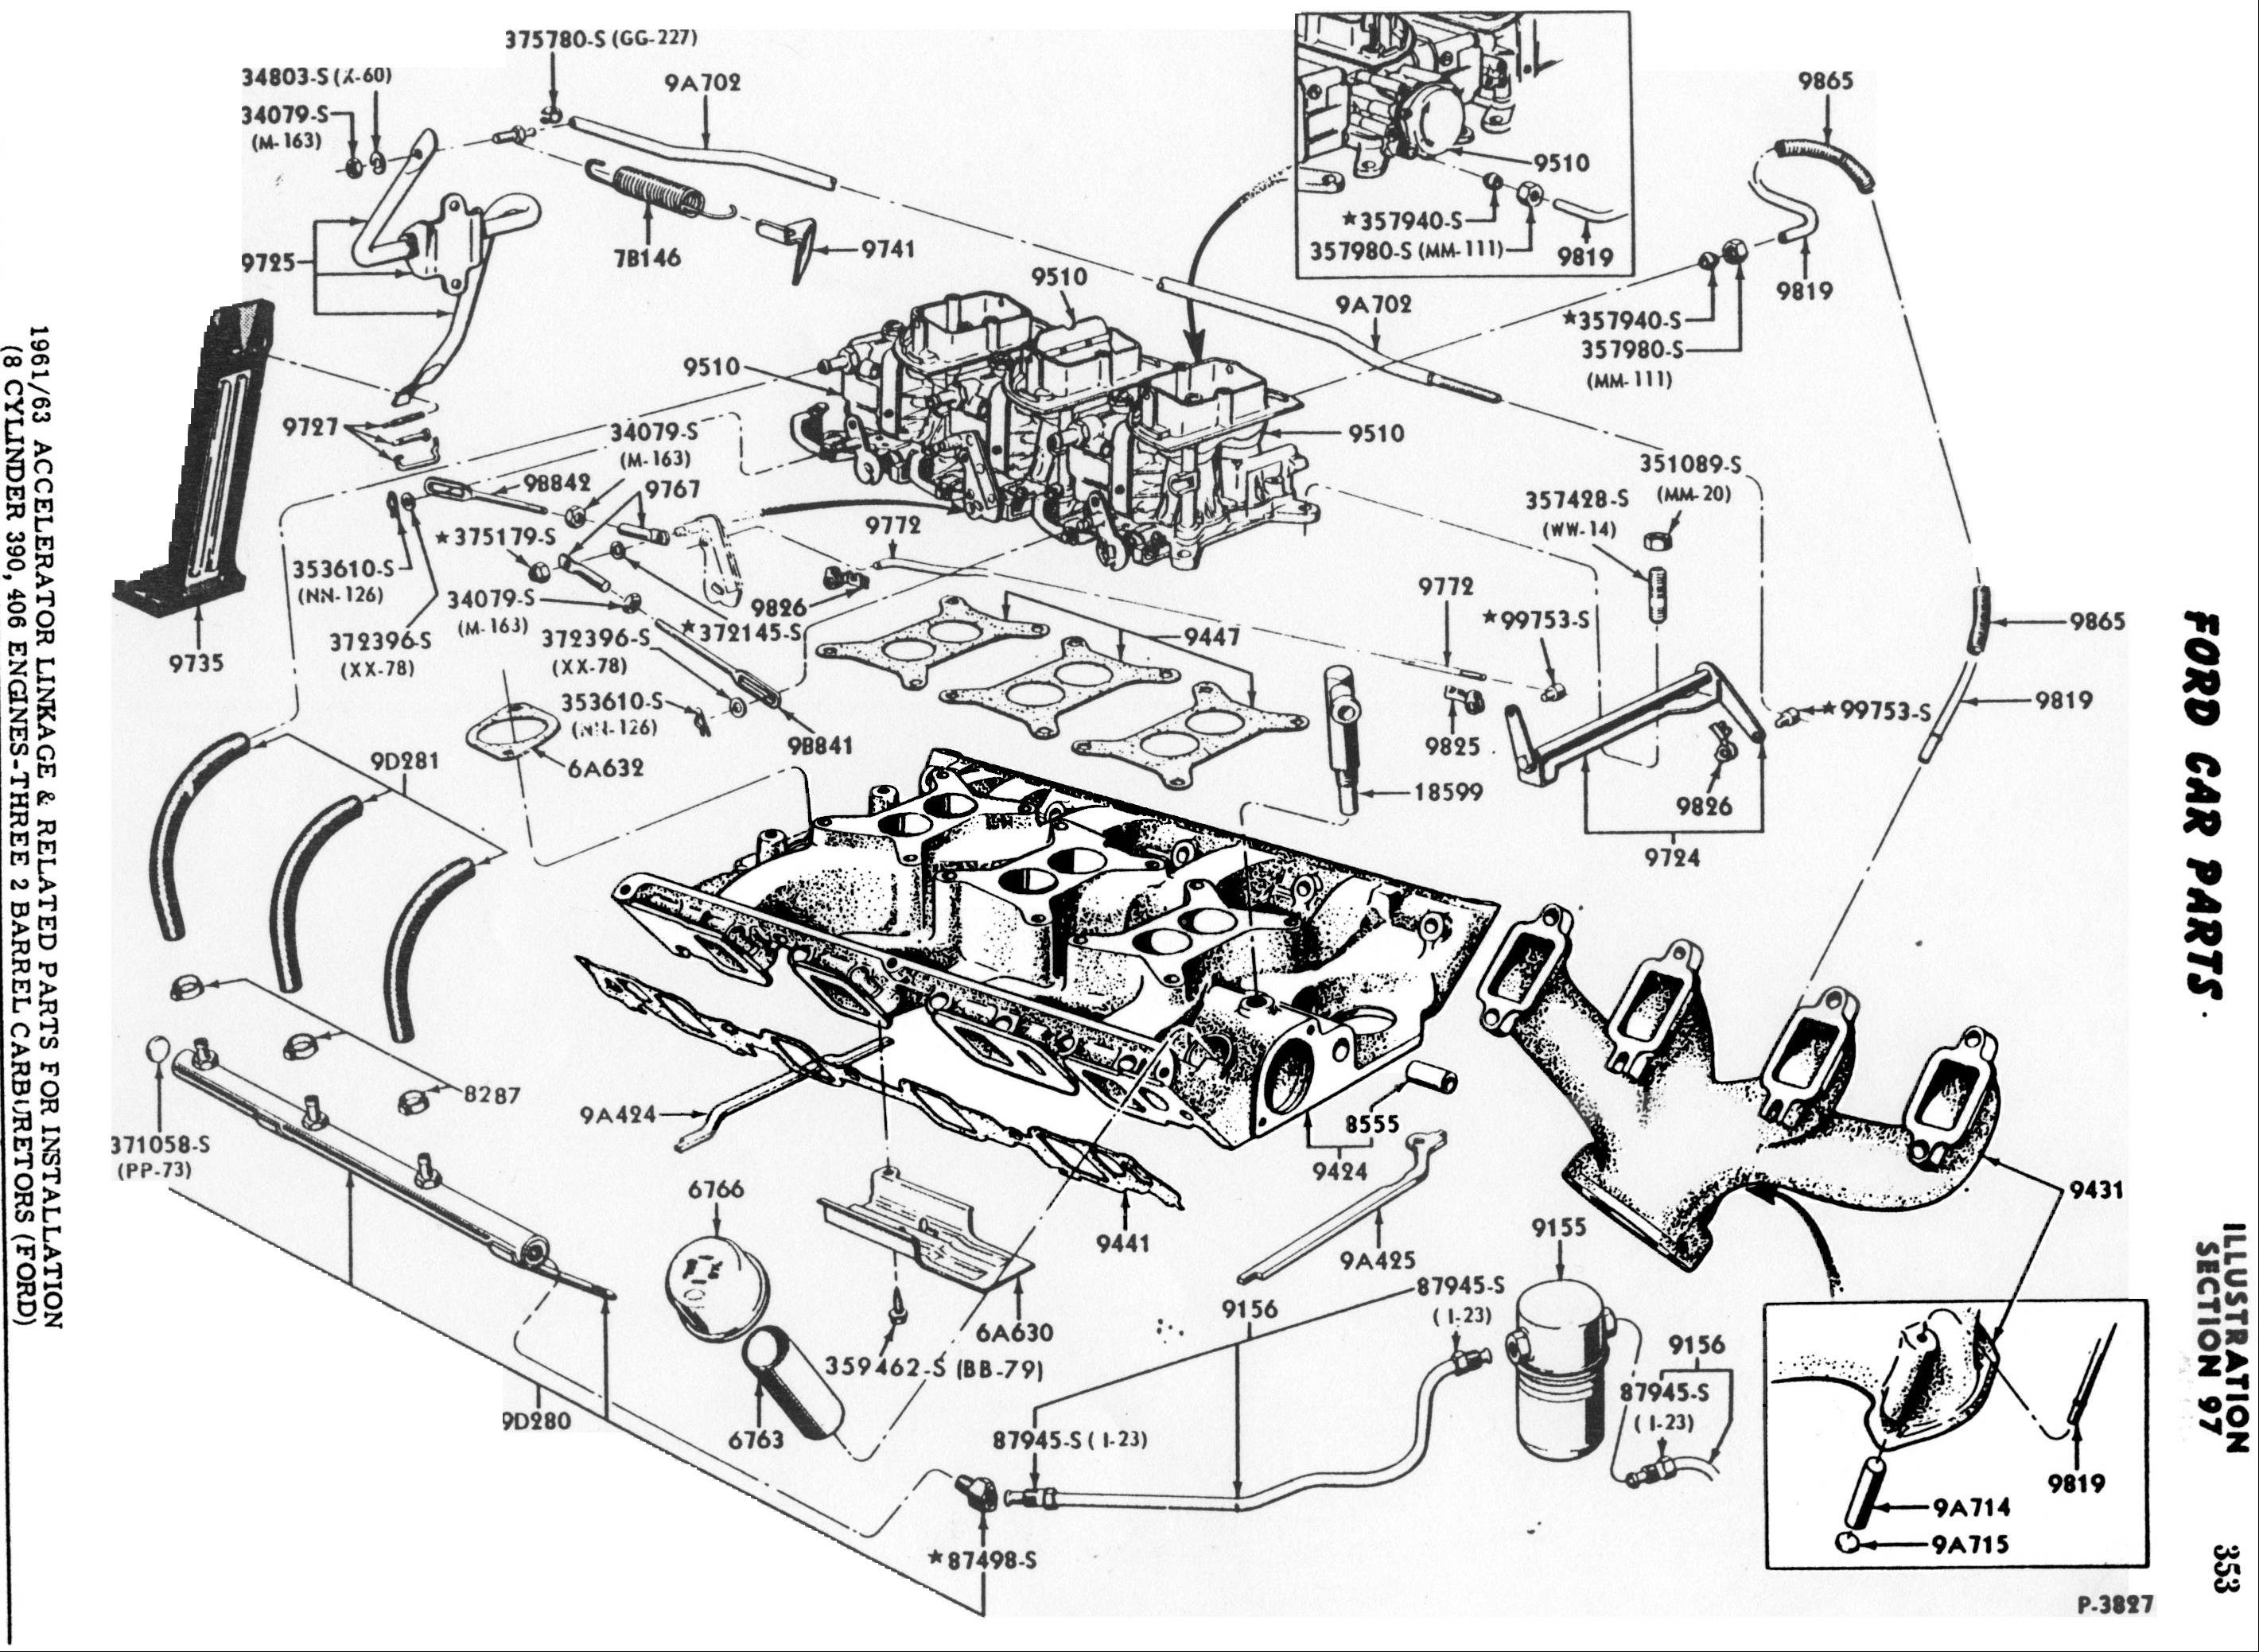 2000 ford focus thermostat diagram simple car stereo wiring engine auto electrical related with